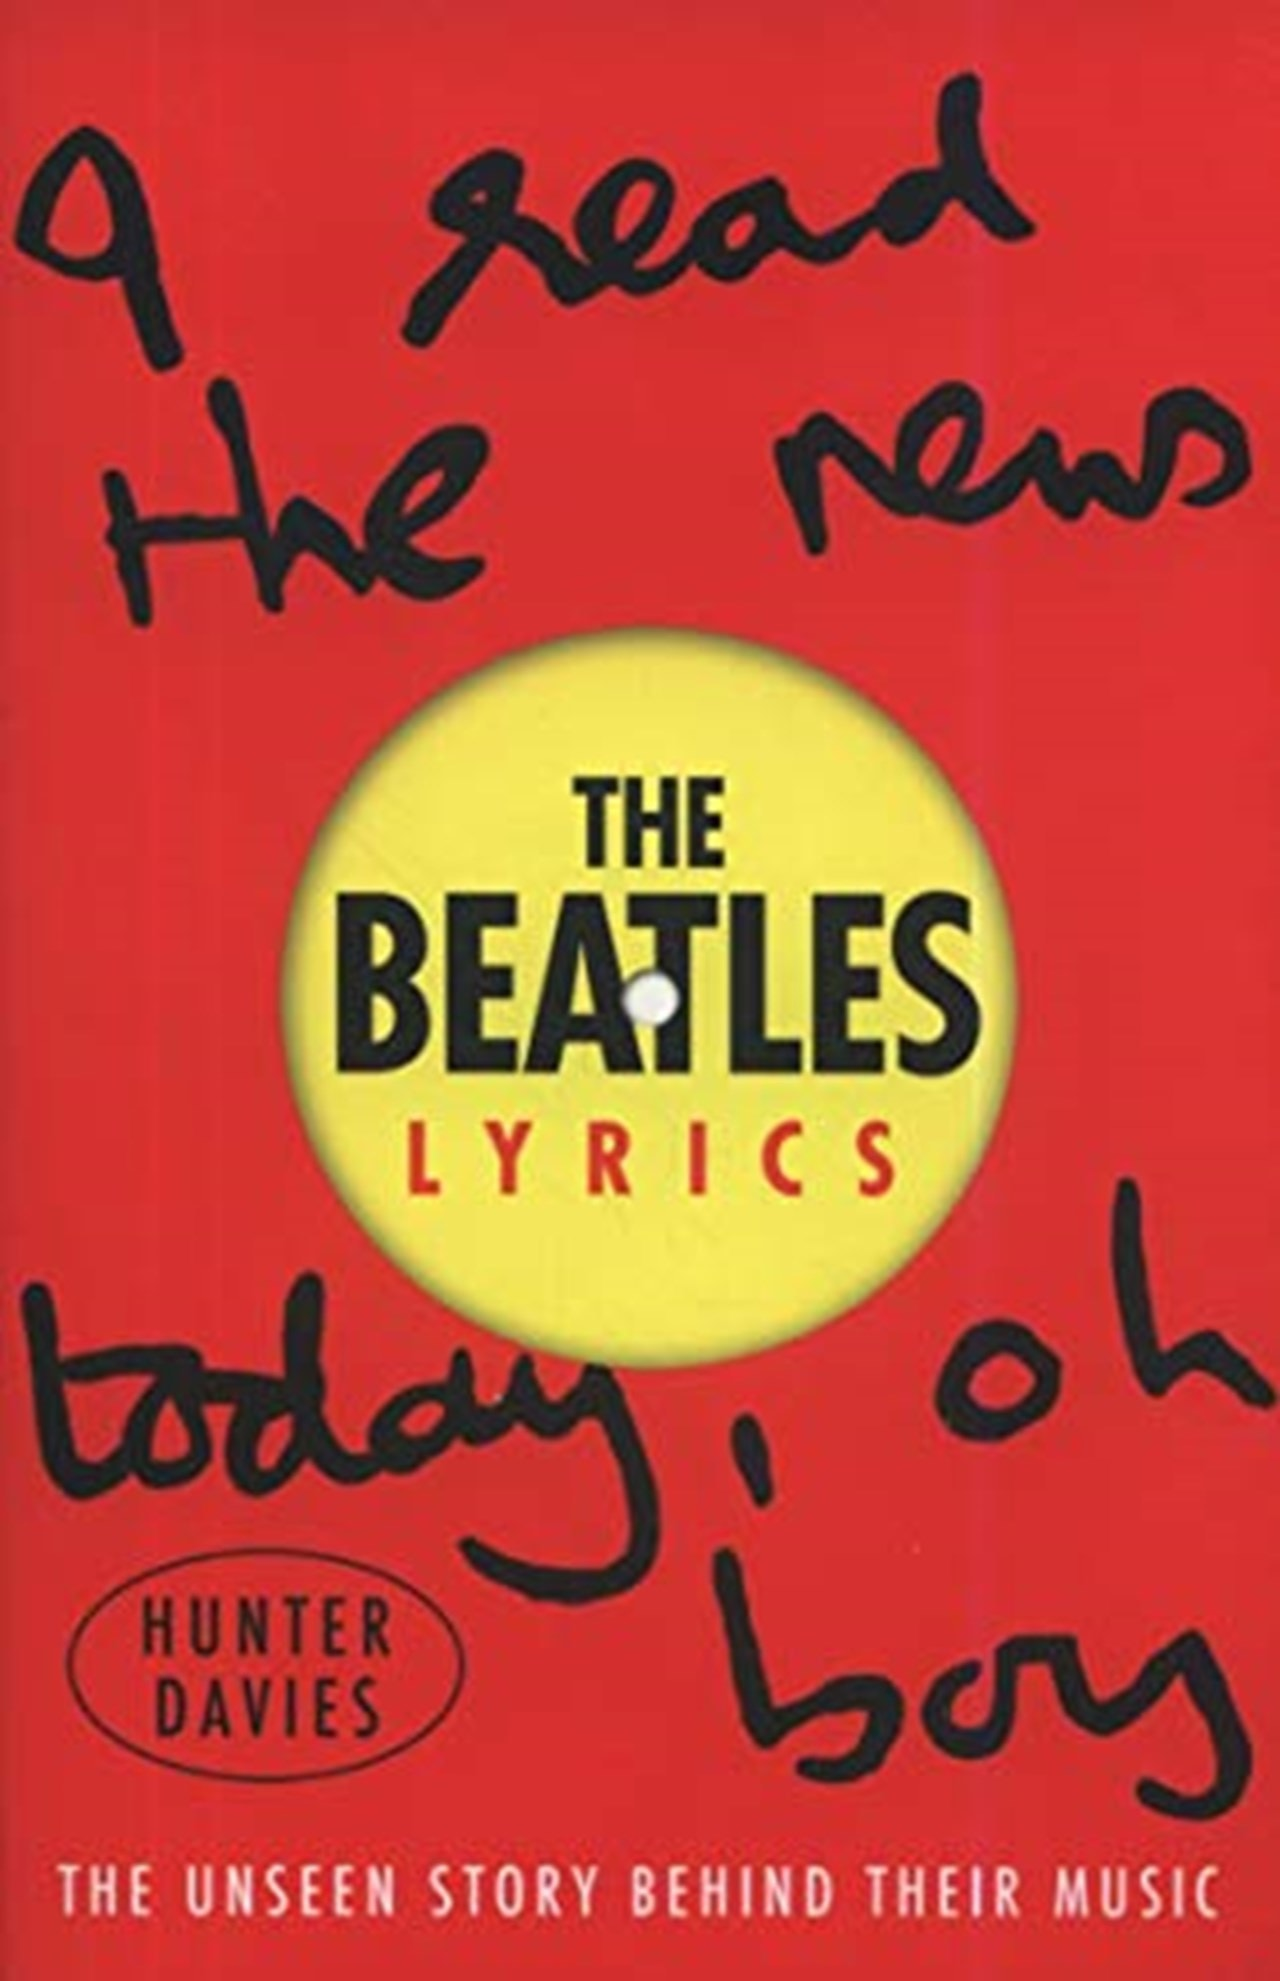 The Beatles Lyrics: The Unseen Story Behind Their Music - 1